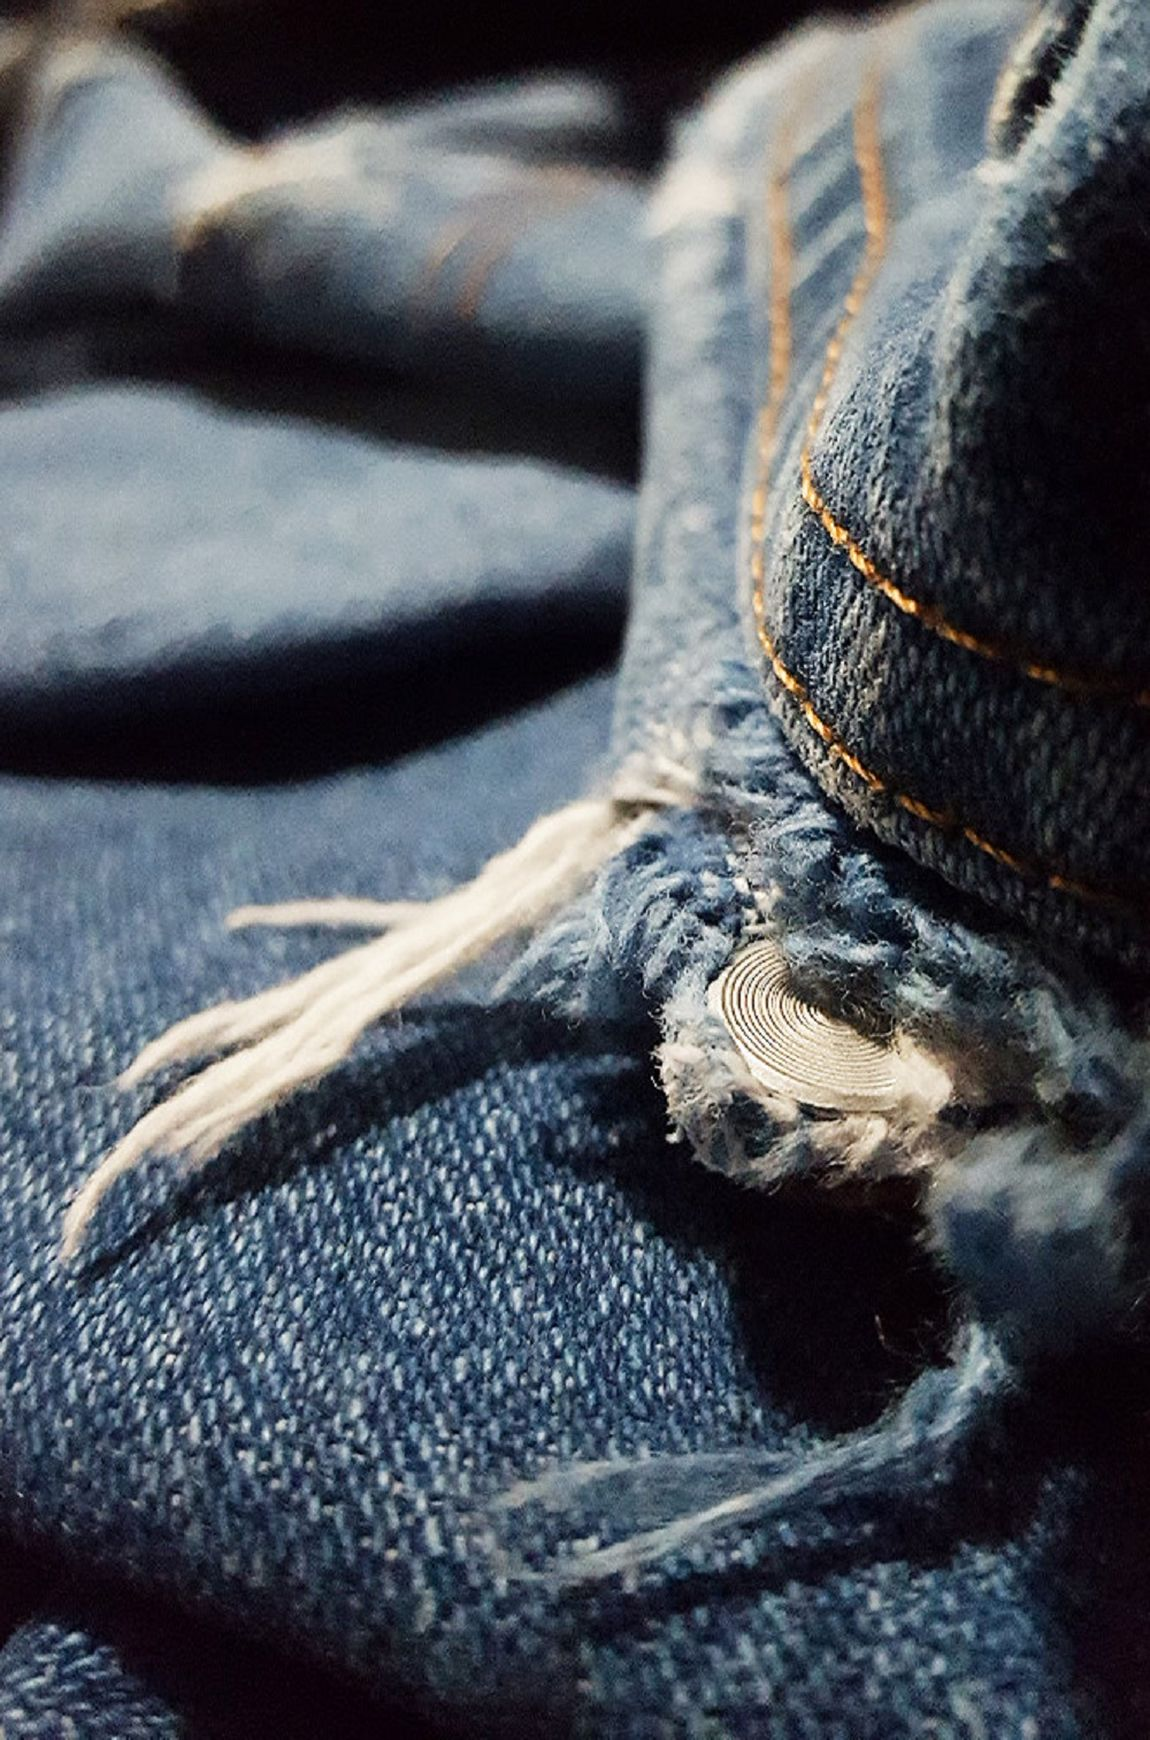 Blue jeans frayed Close-up Day Fabric Faded Material Holes Indoors  Men's Jean No People